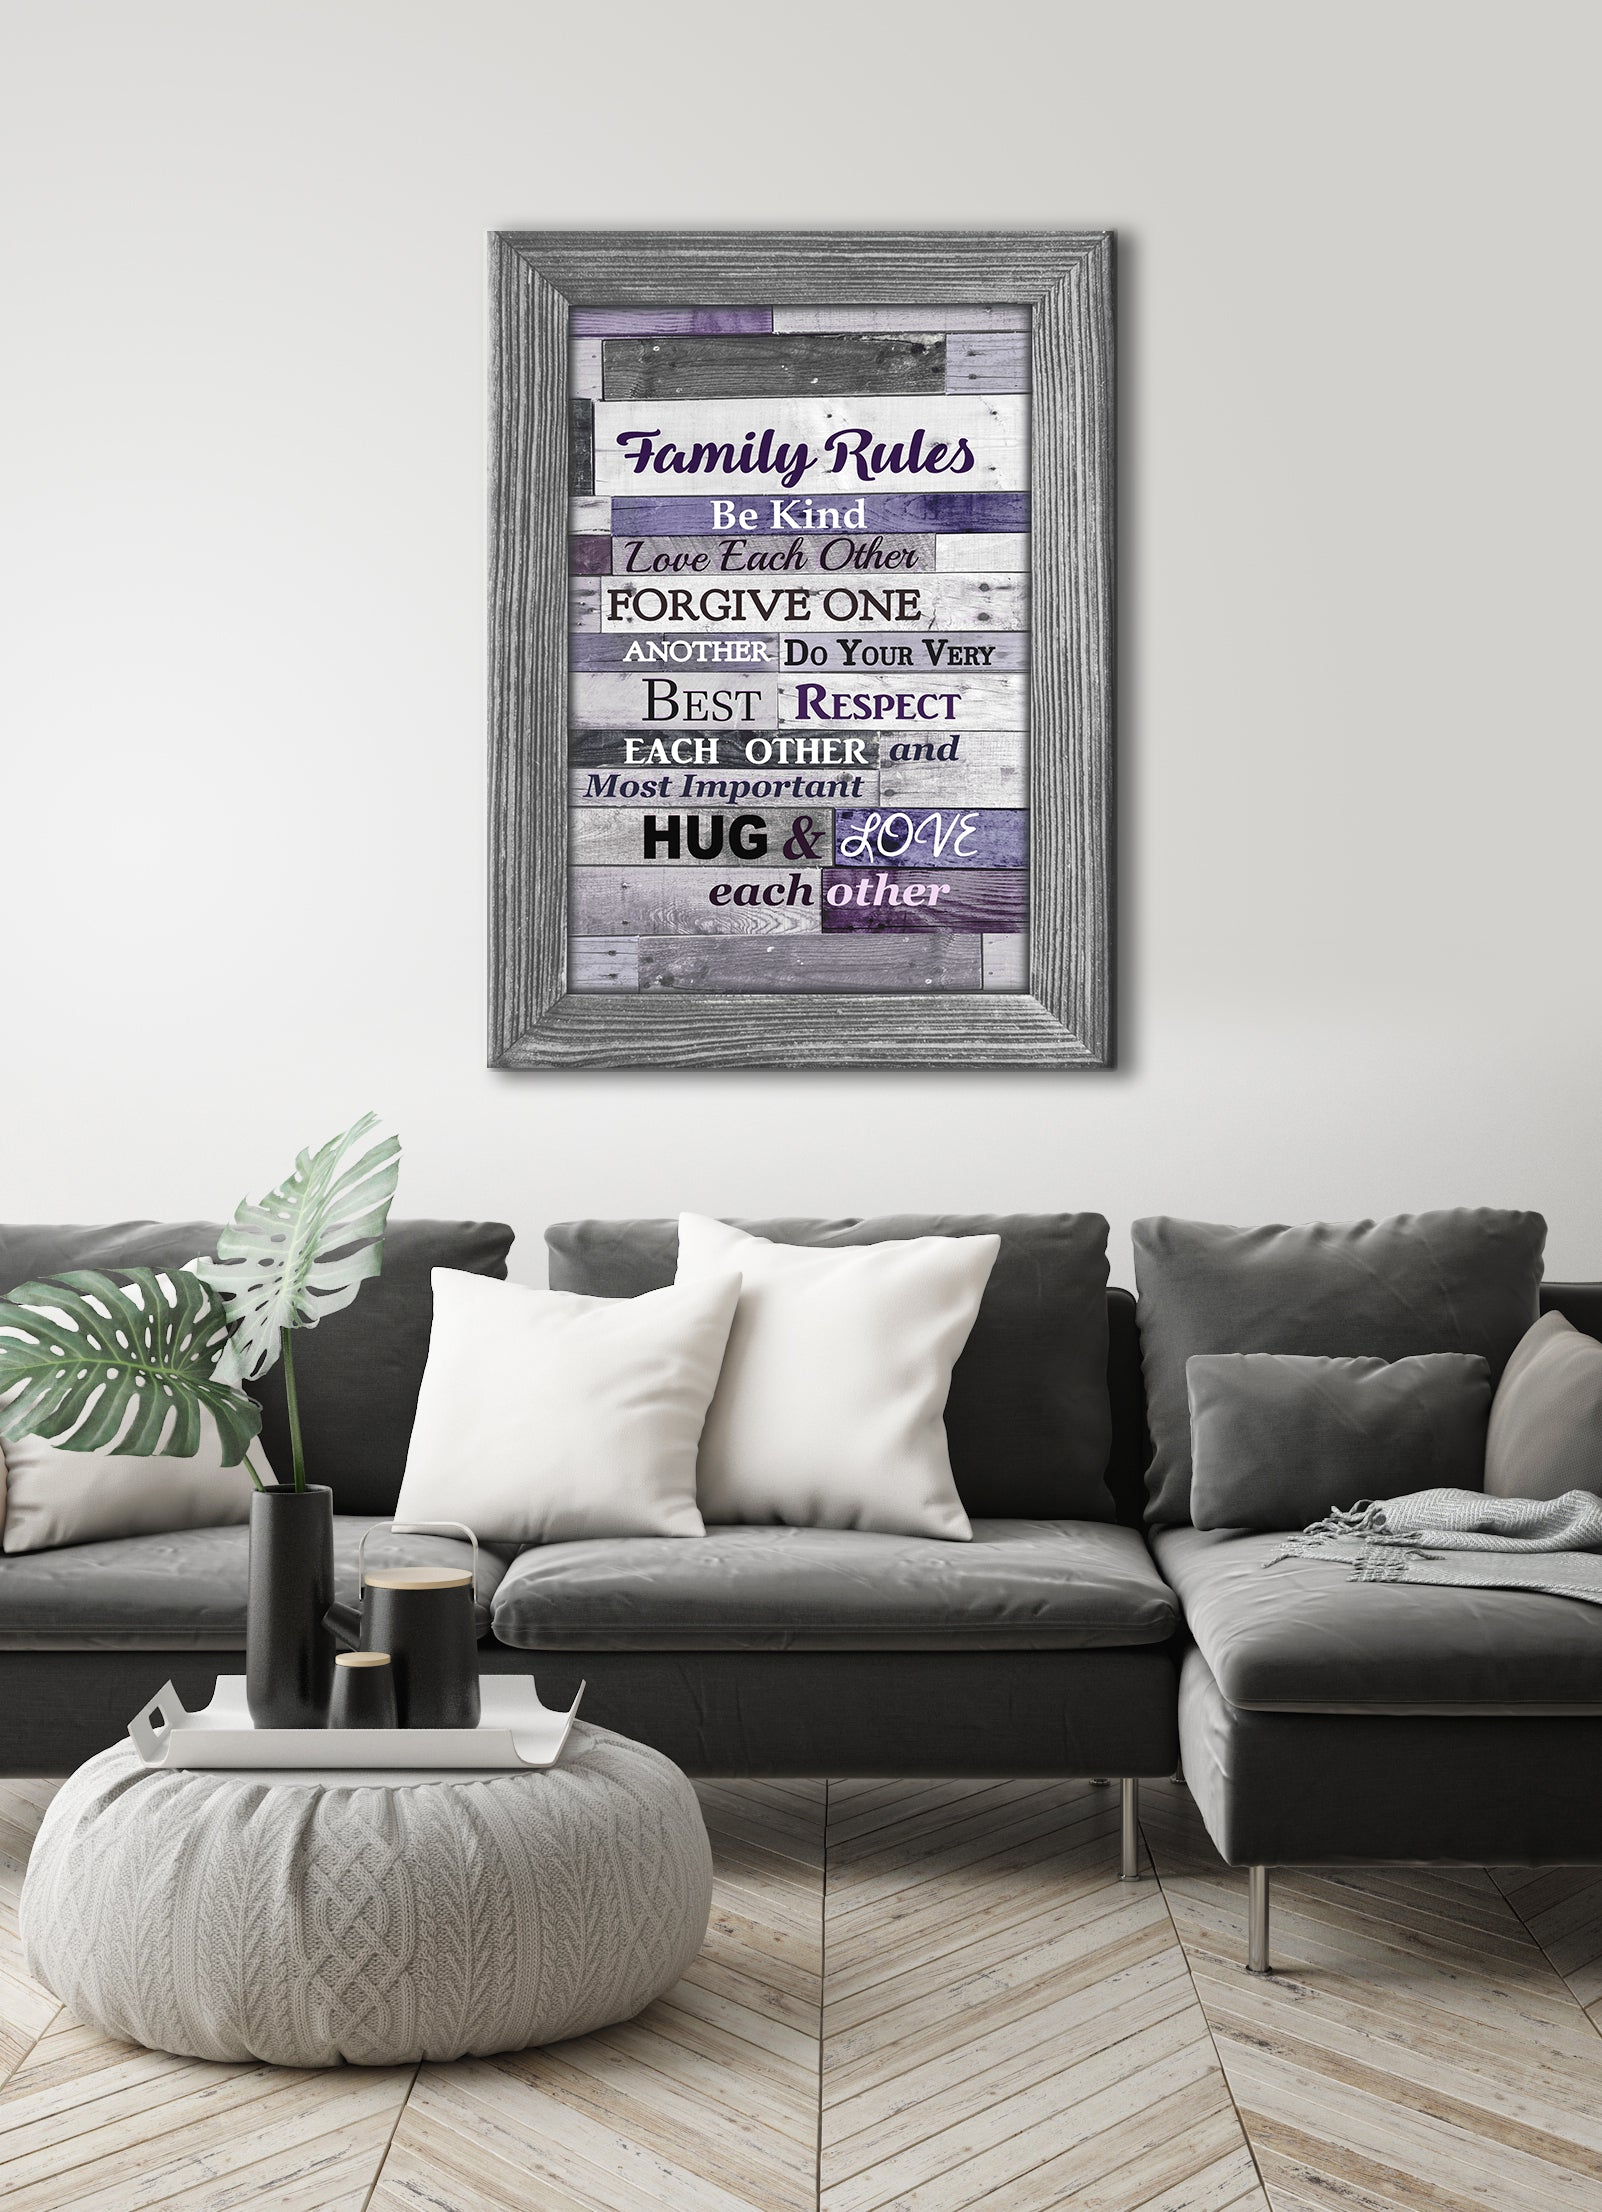 Home Wall Art: Sweet Family Saying Canvas 50% Sale! FREE USA SHIPPING TODAY!